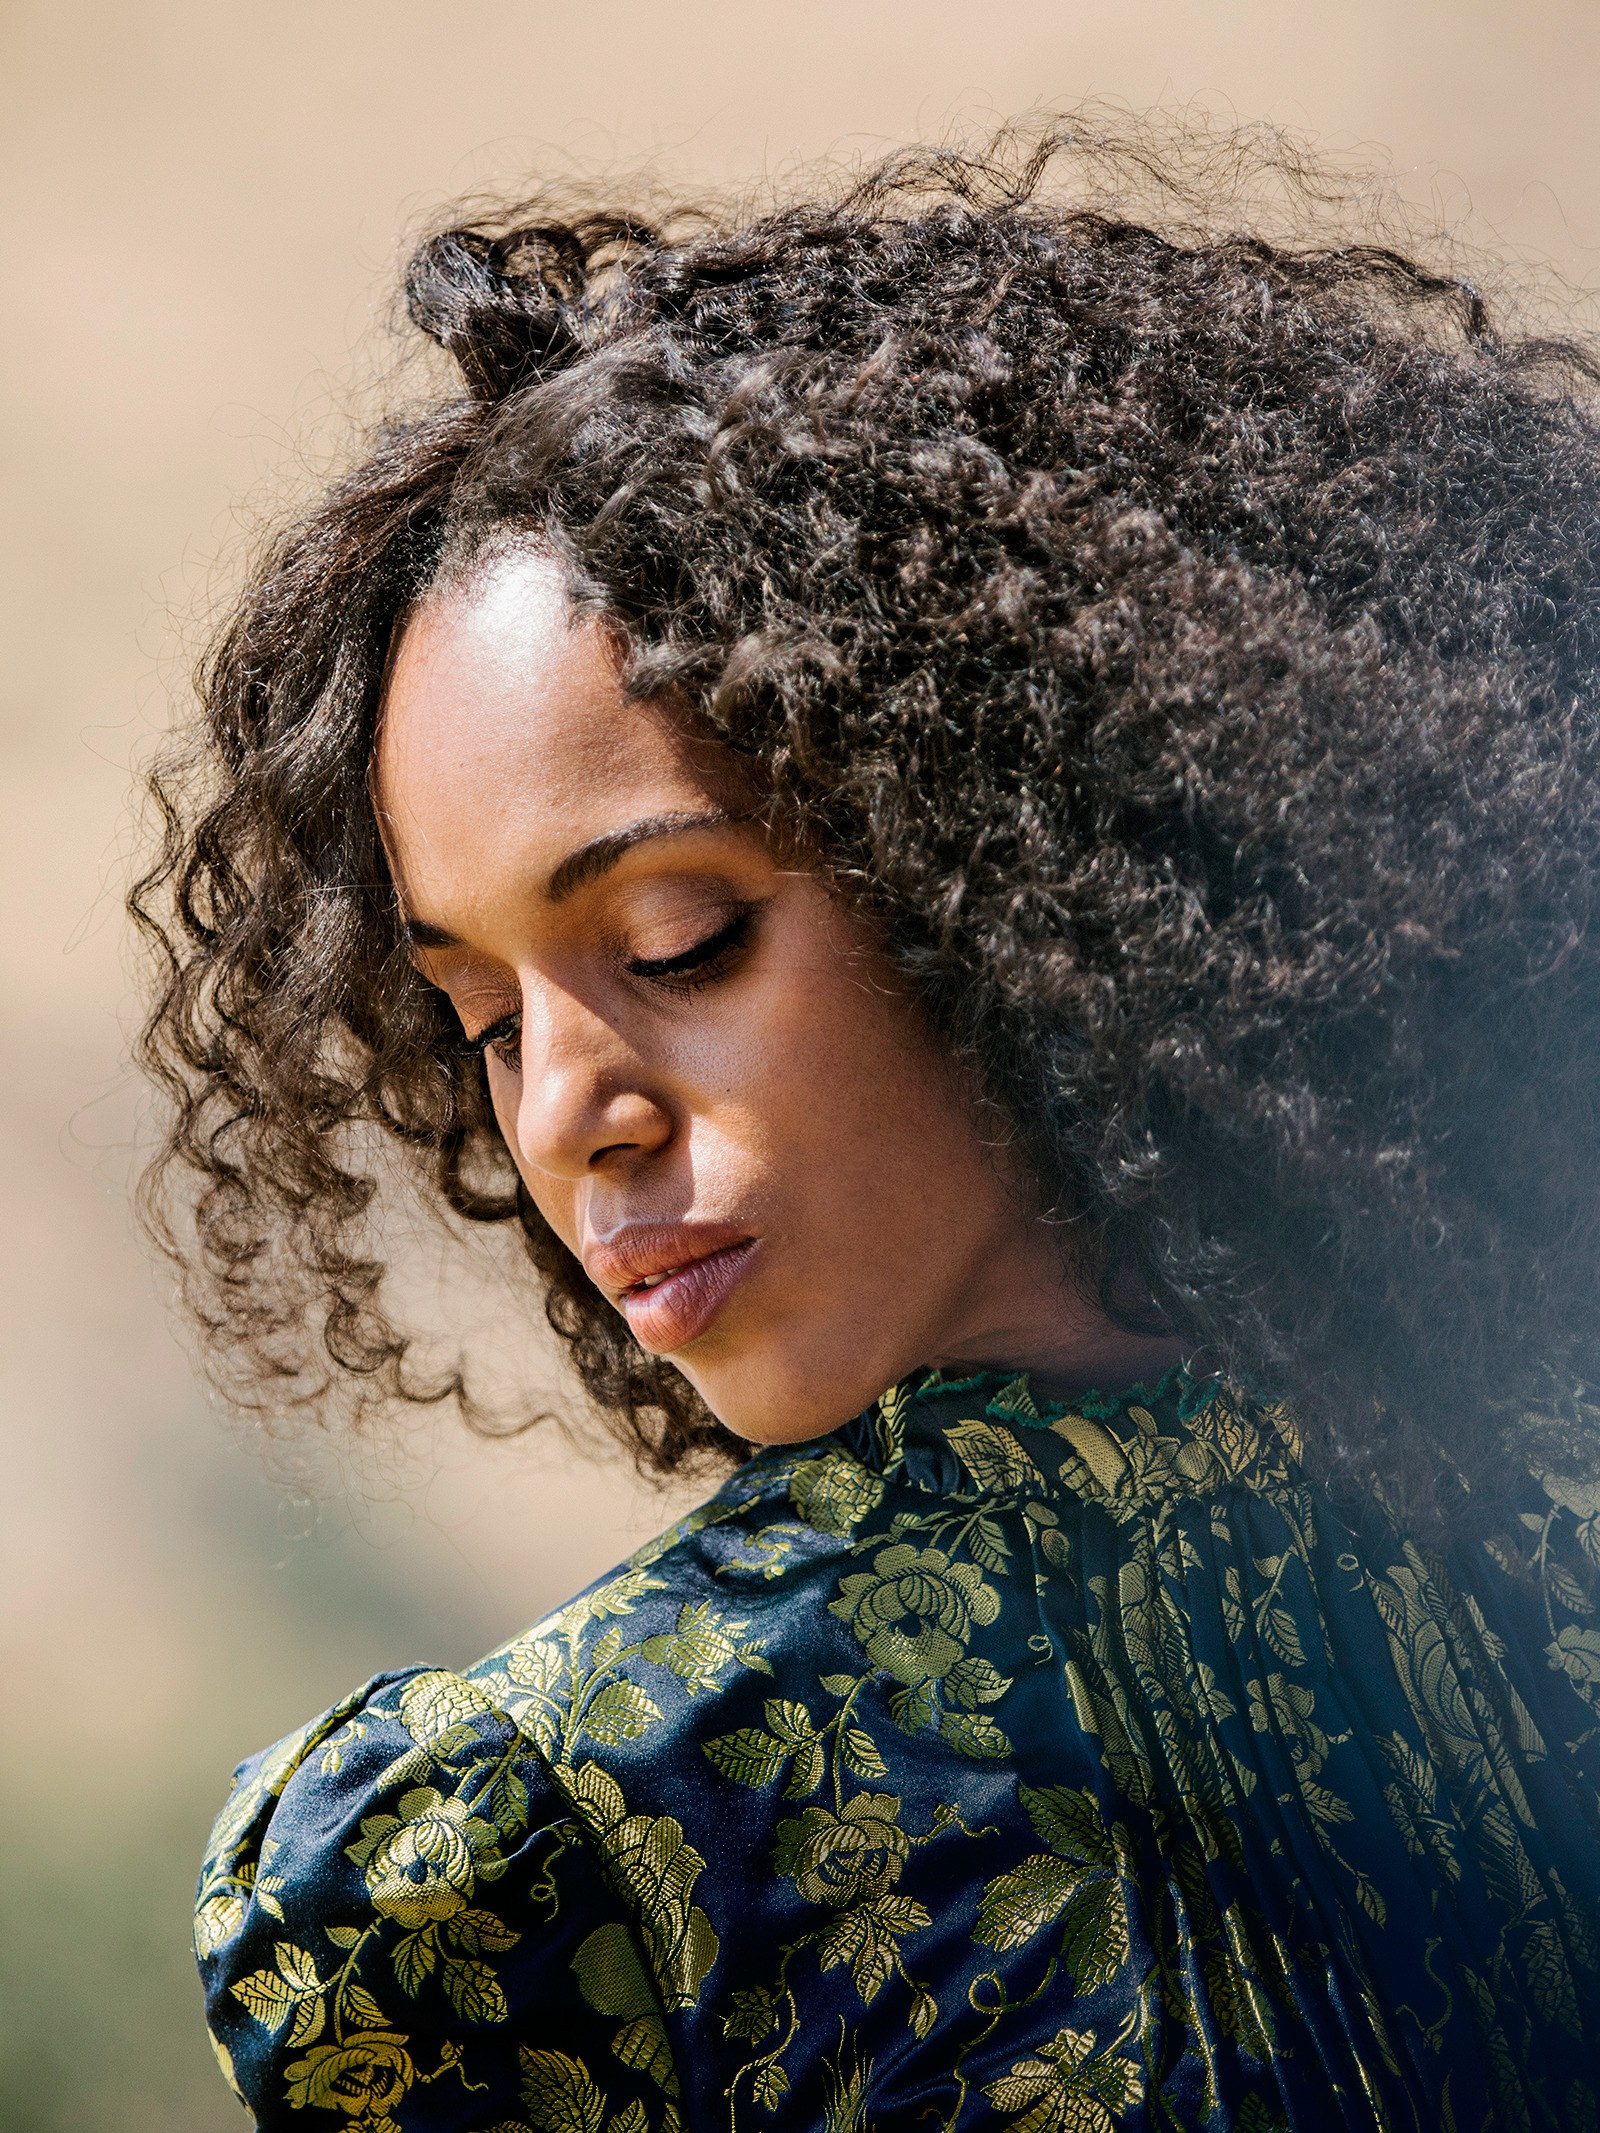 Kerry Washington - Actress known for starring as Olivia Pope on Scandal